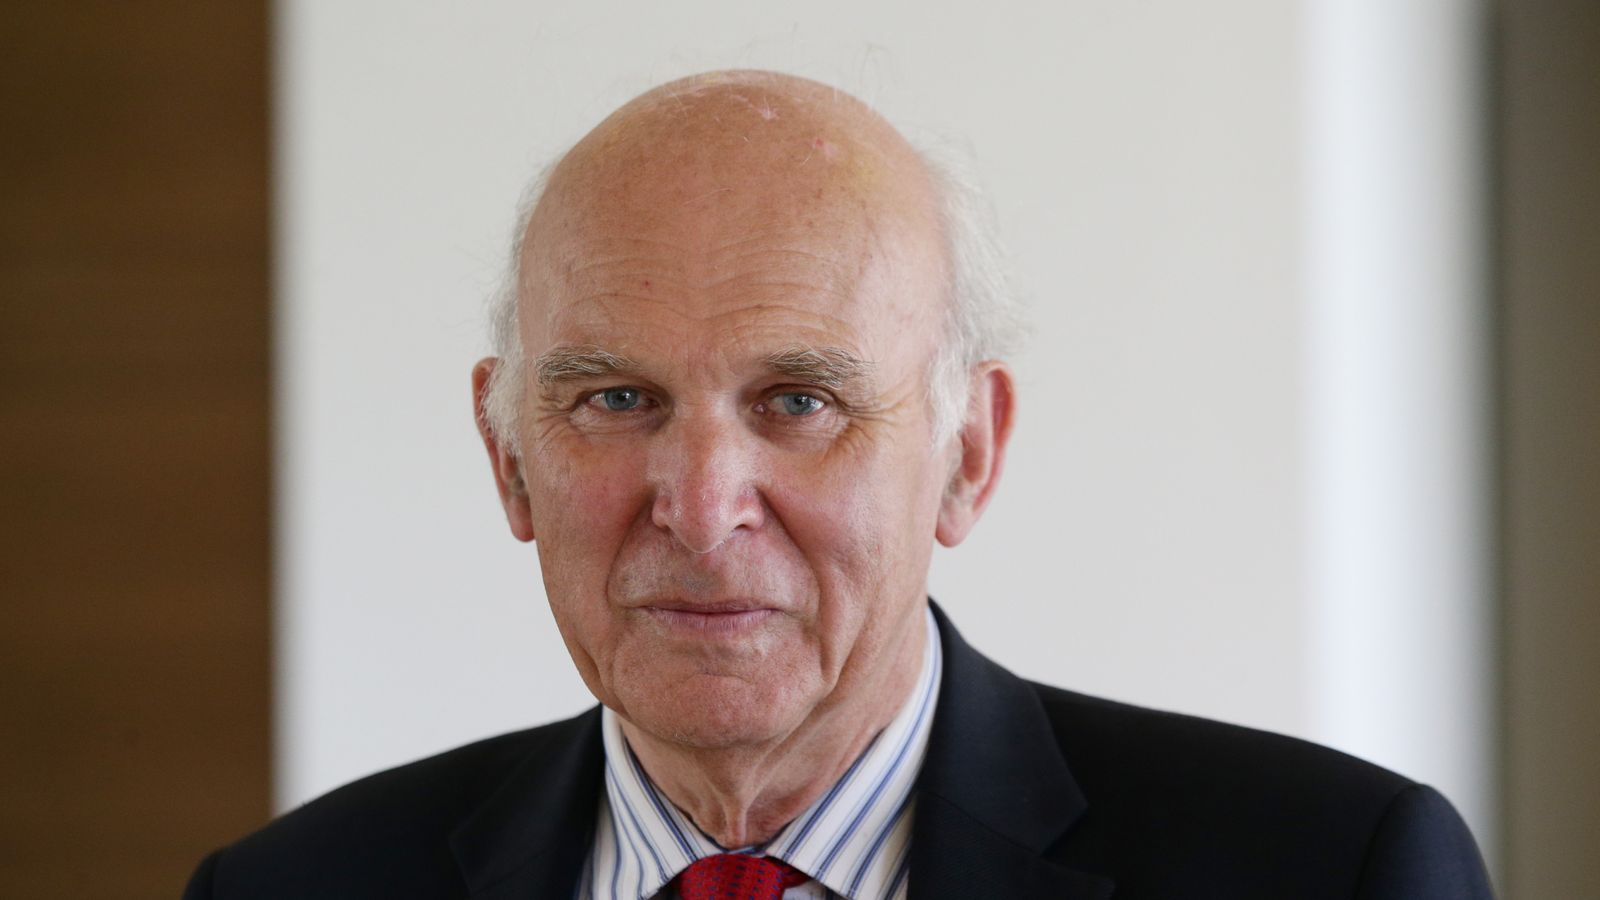 New Lib Dem leader Vince Cable calls for 'exit from Brexit'